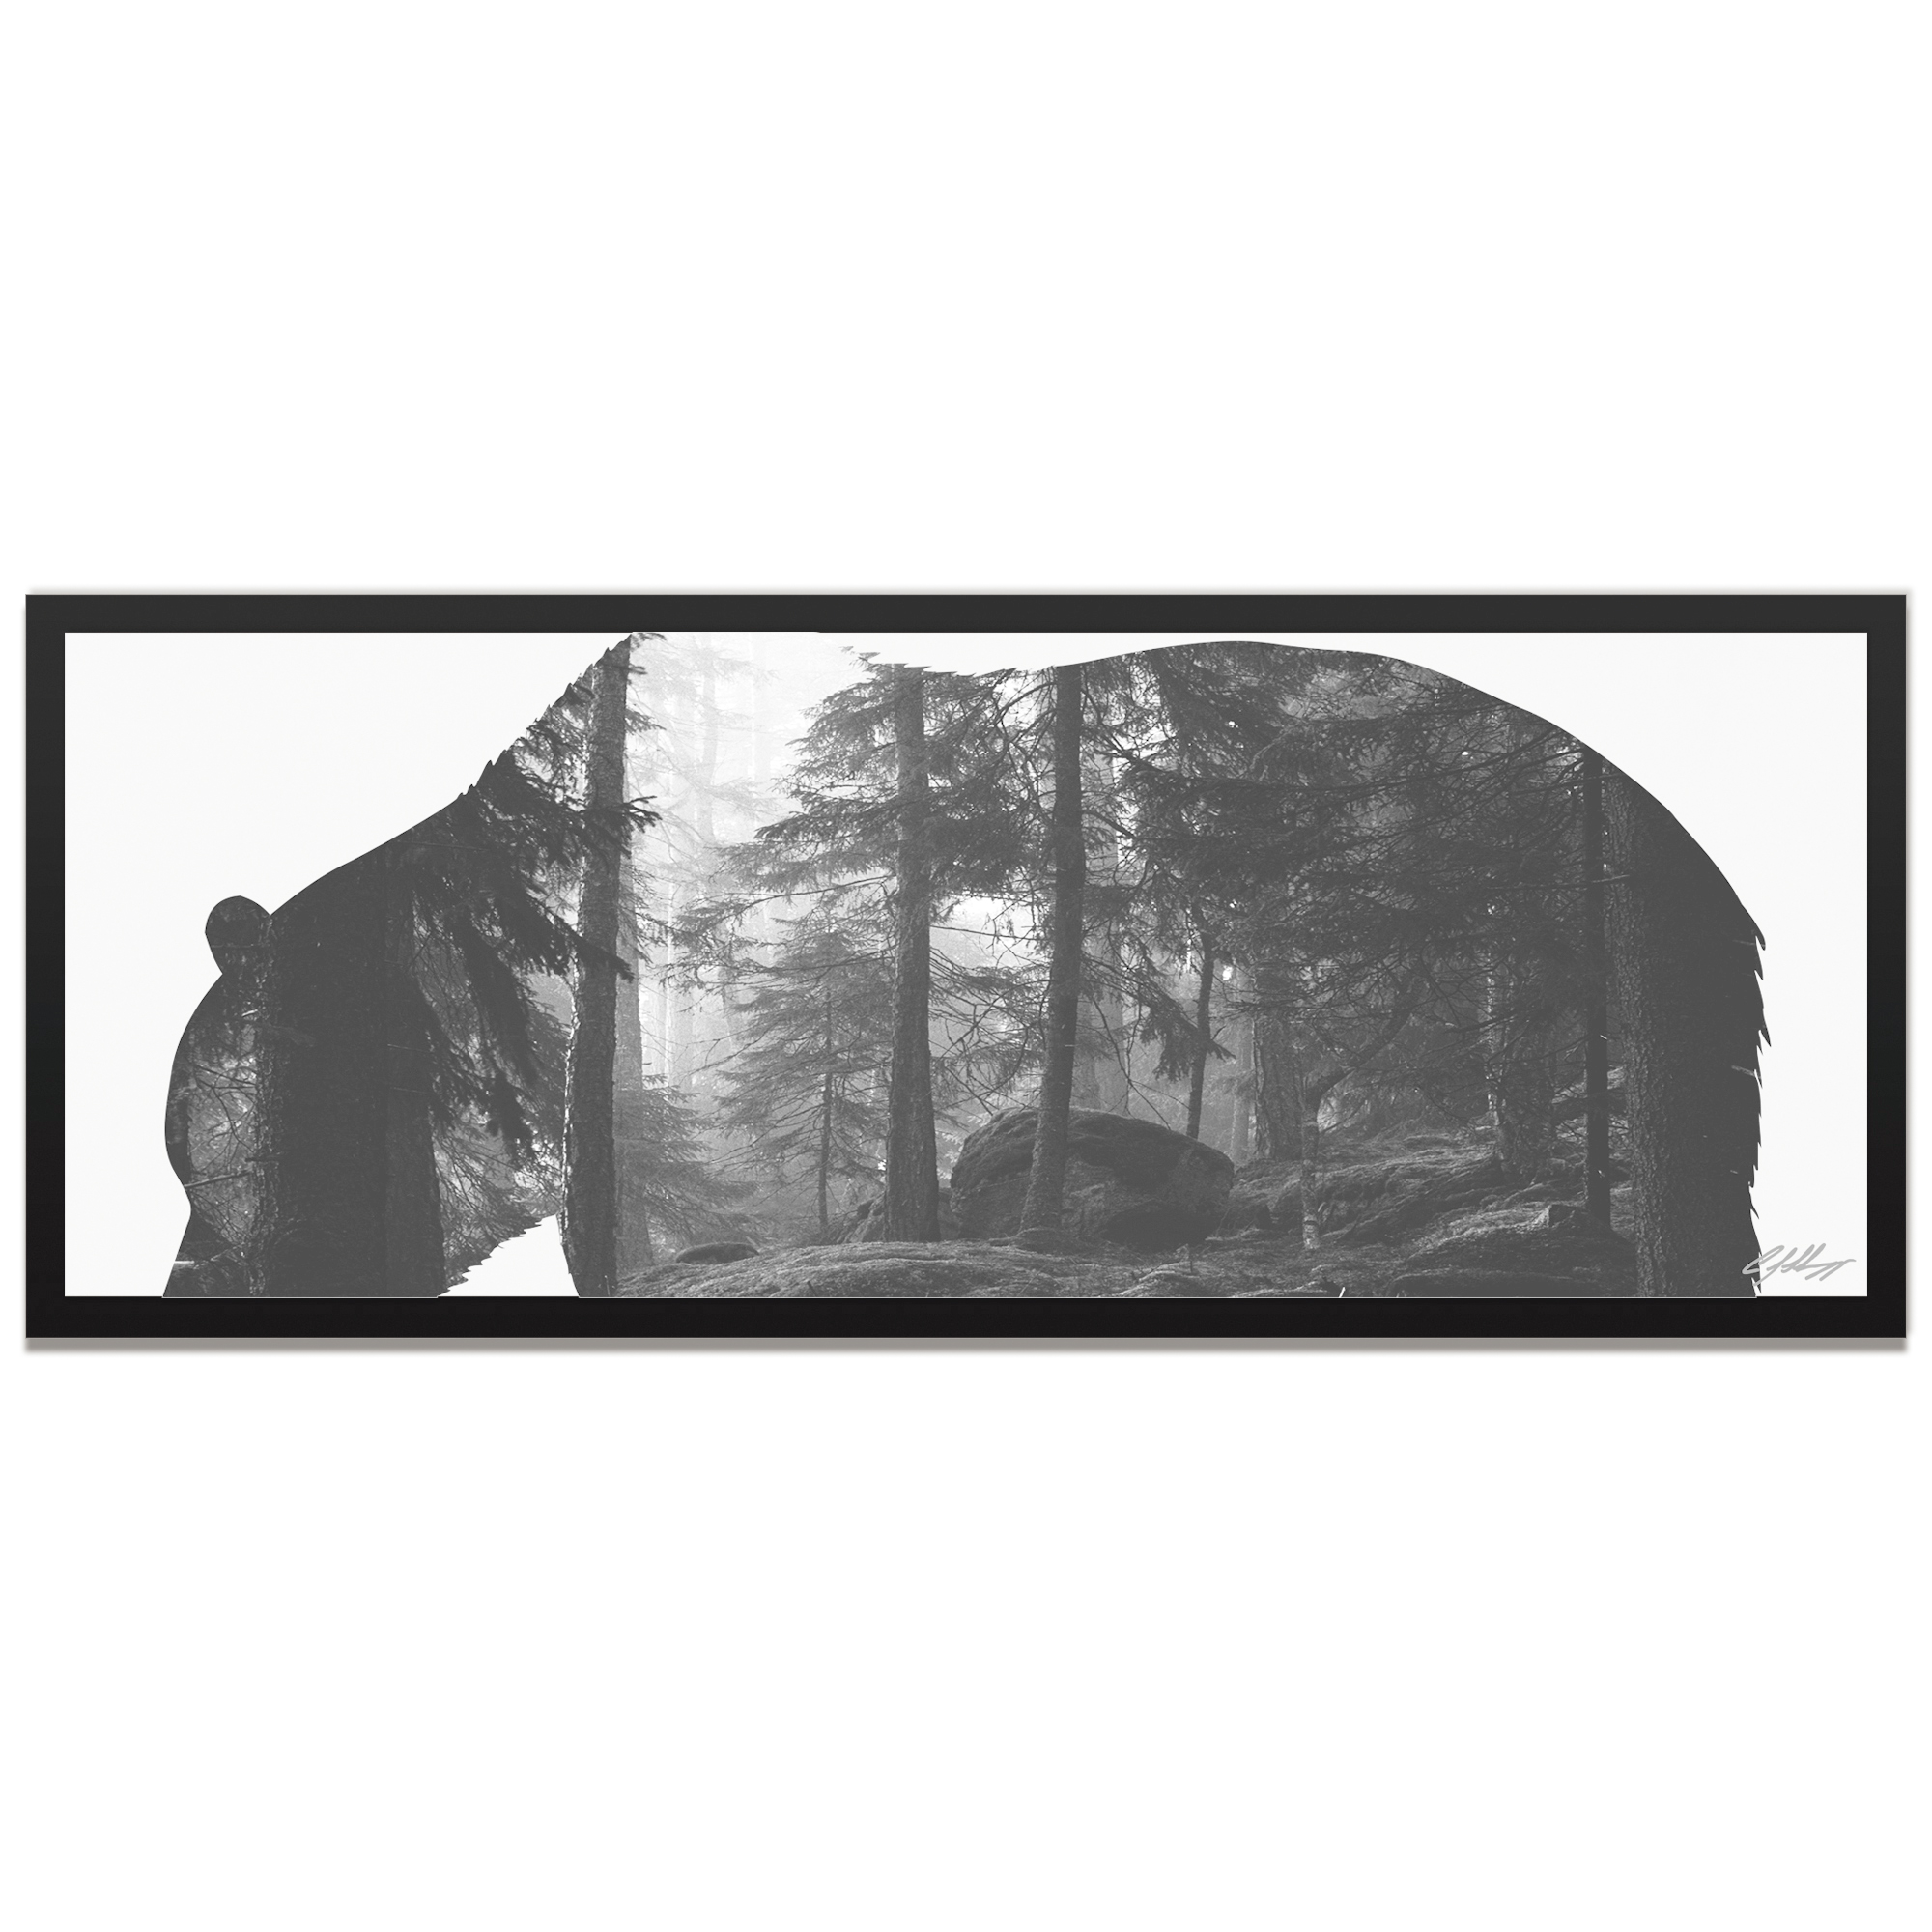 Adam Schwoeppe 'Grizzly Bear Forest Framed' 48in x 19in Contemporary Animal Silhouette Art on Colored Metal